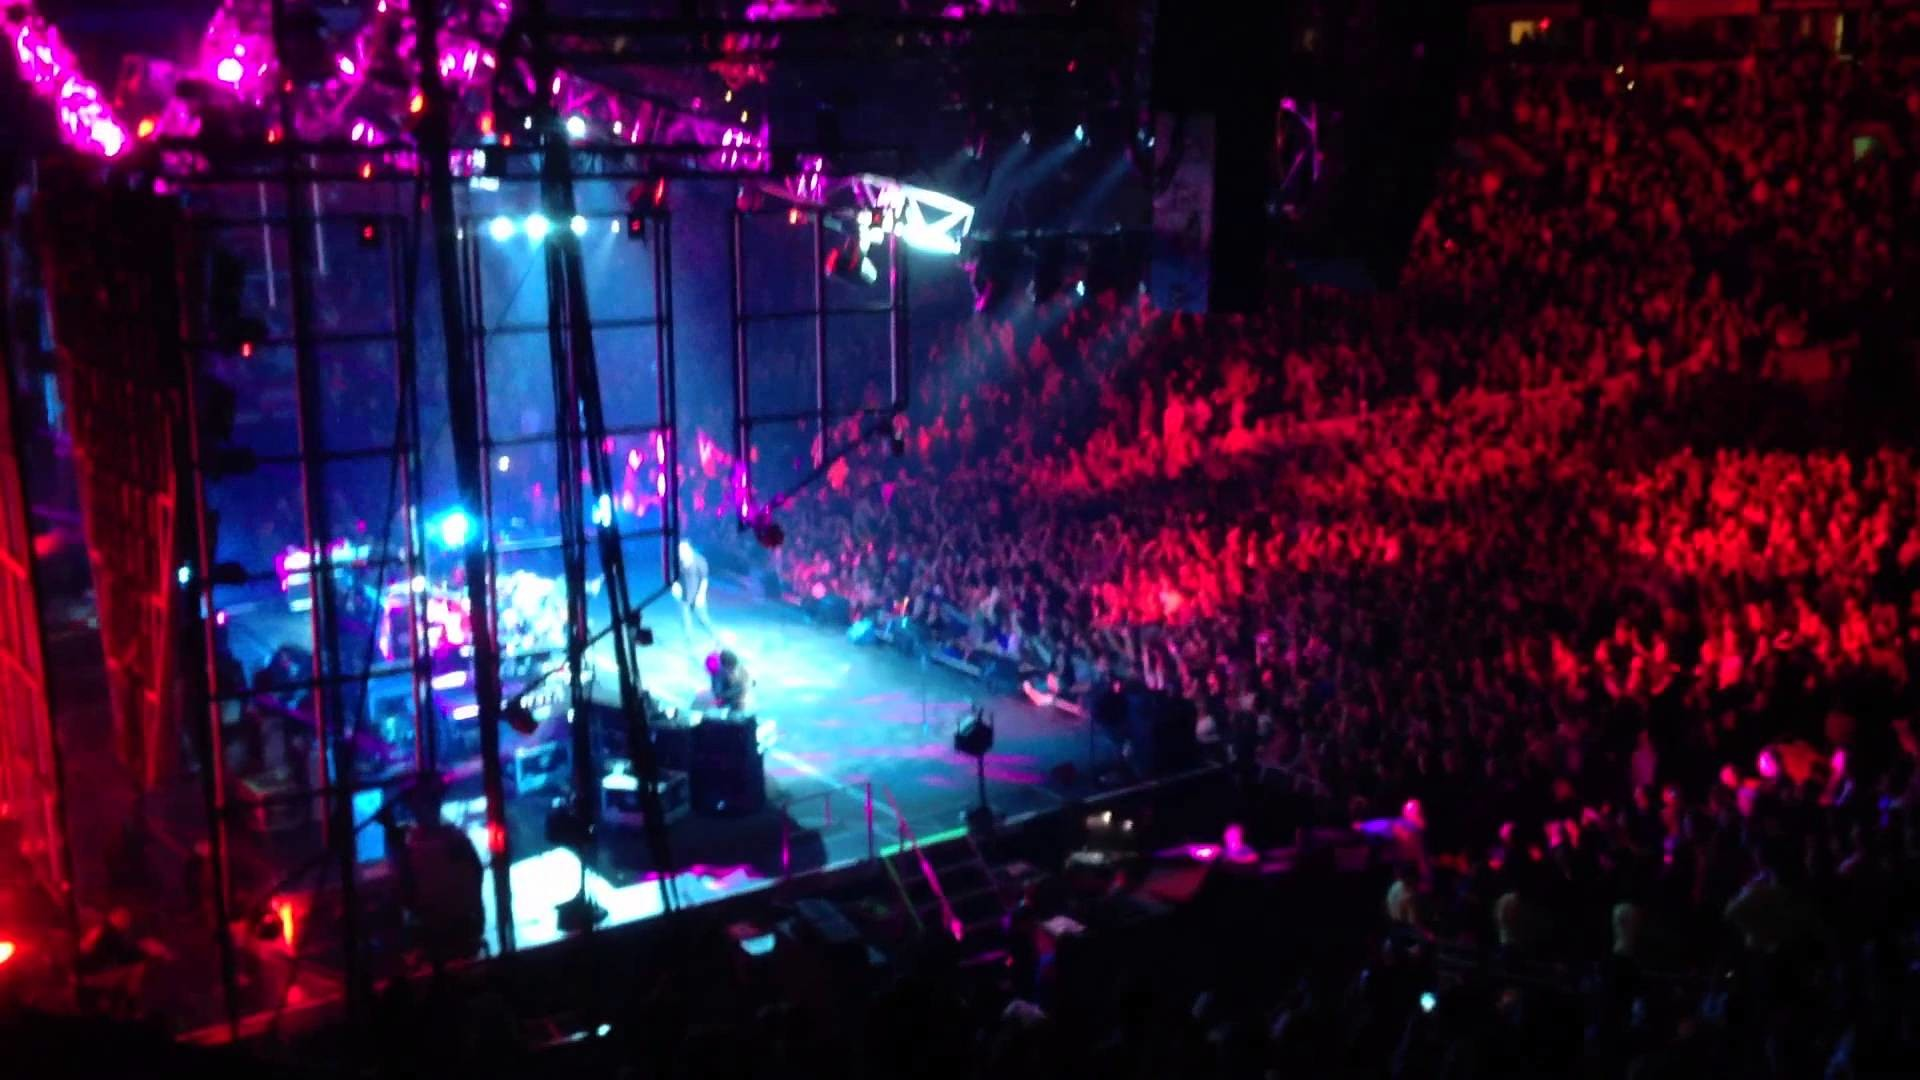 1920x1080 Dave Matthews Band Live at TD Garden Boston Thank You